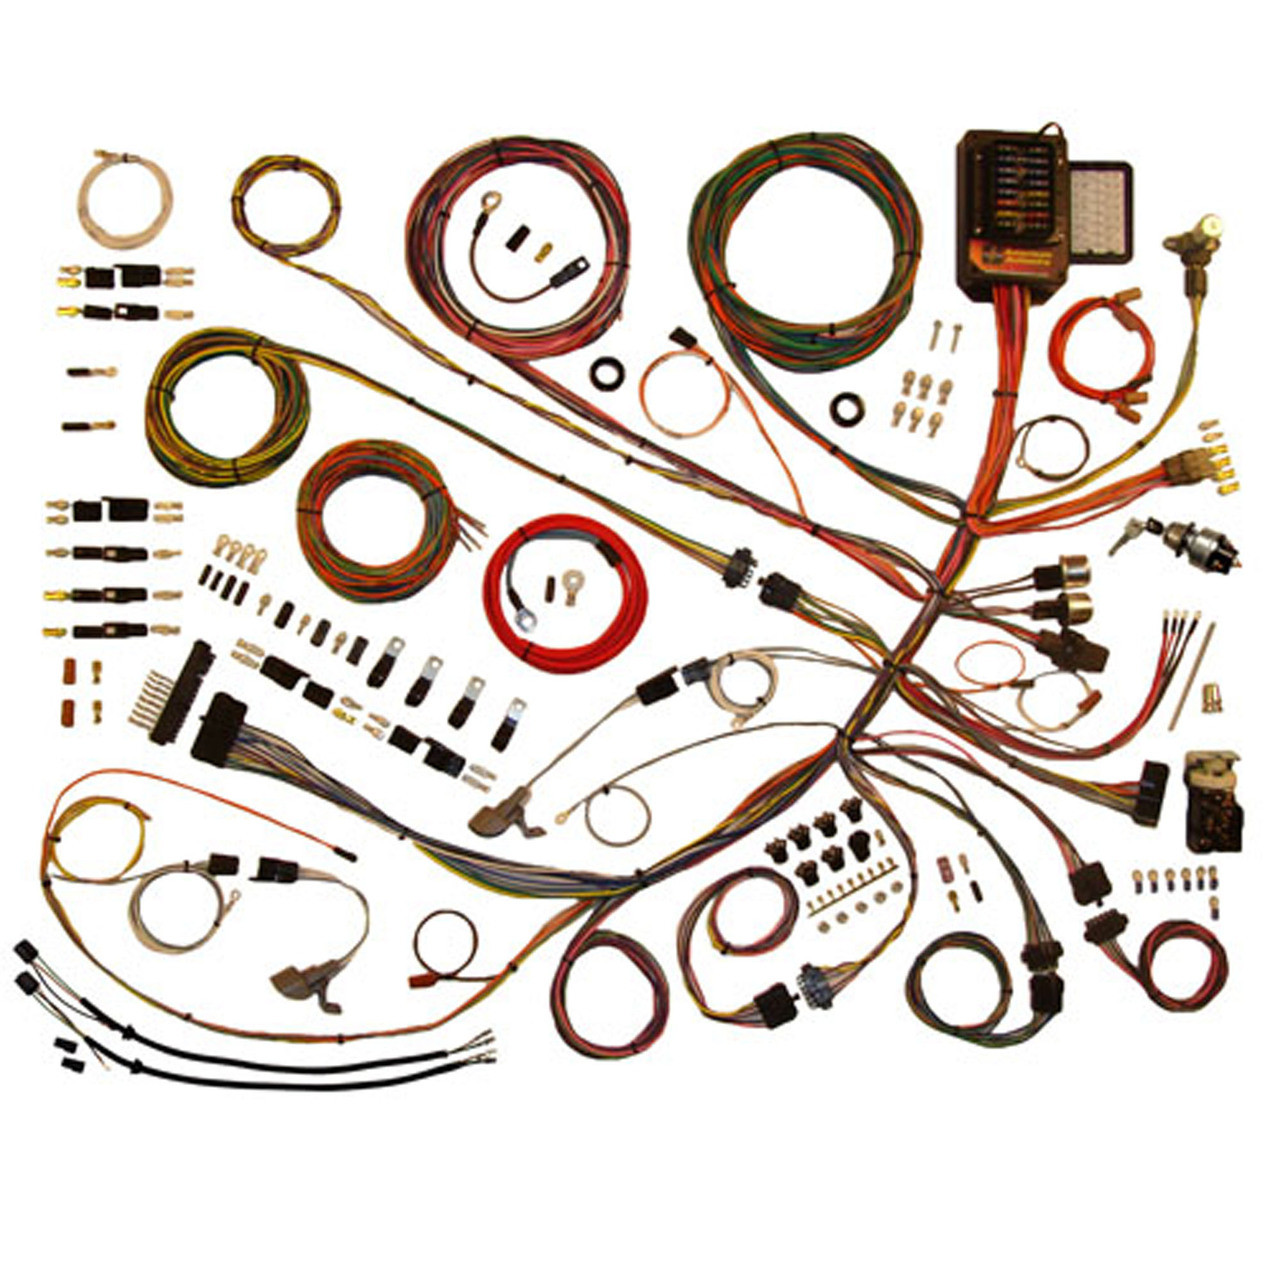 hight resolution of american autowire 1953 1956 ford truck classic update complete wiring kit ame